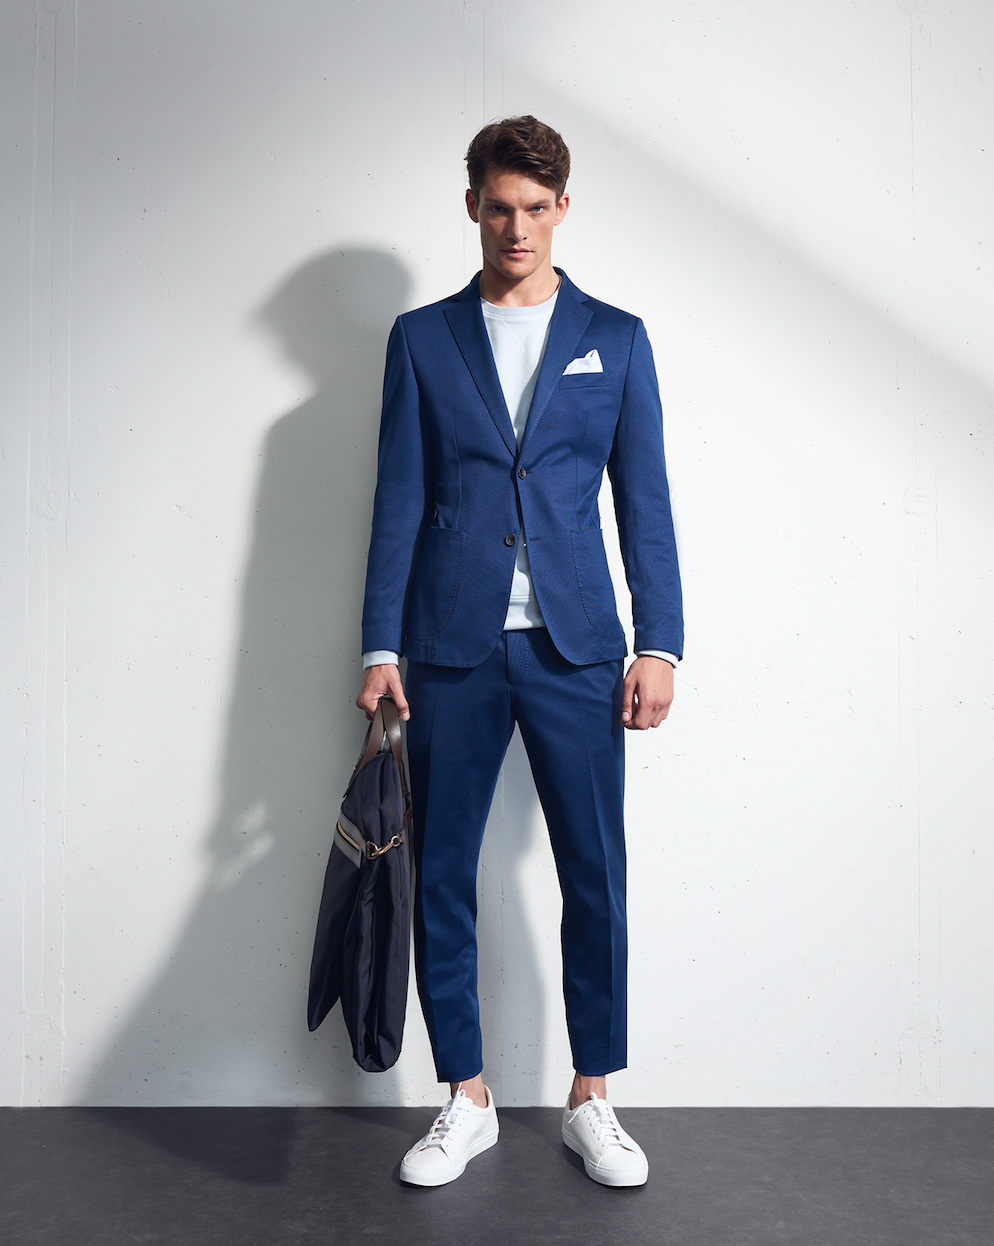 Blue Jacket Windsor Lookbook Male Fashion